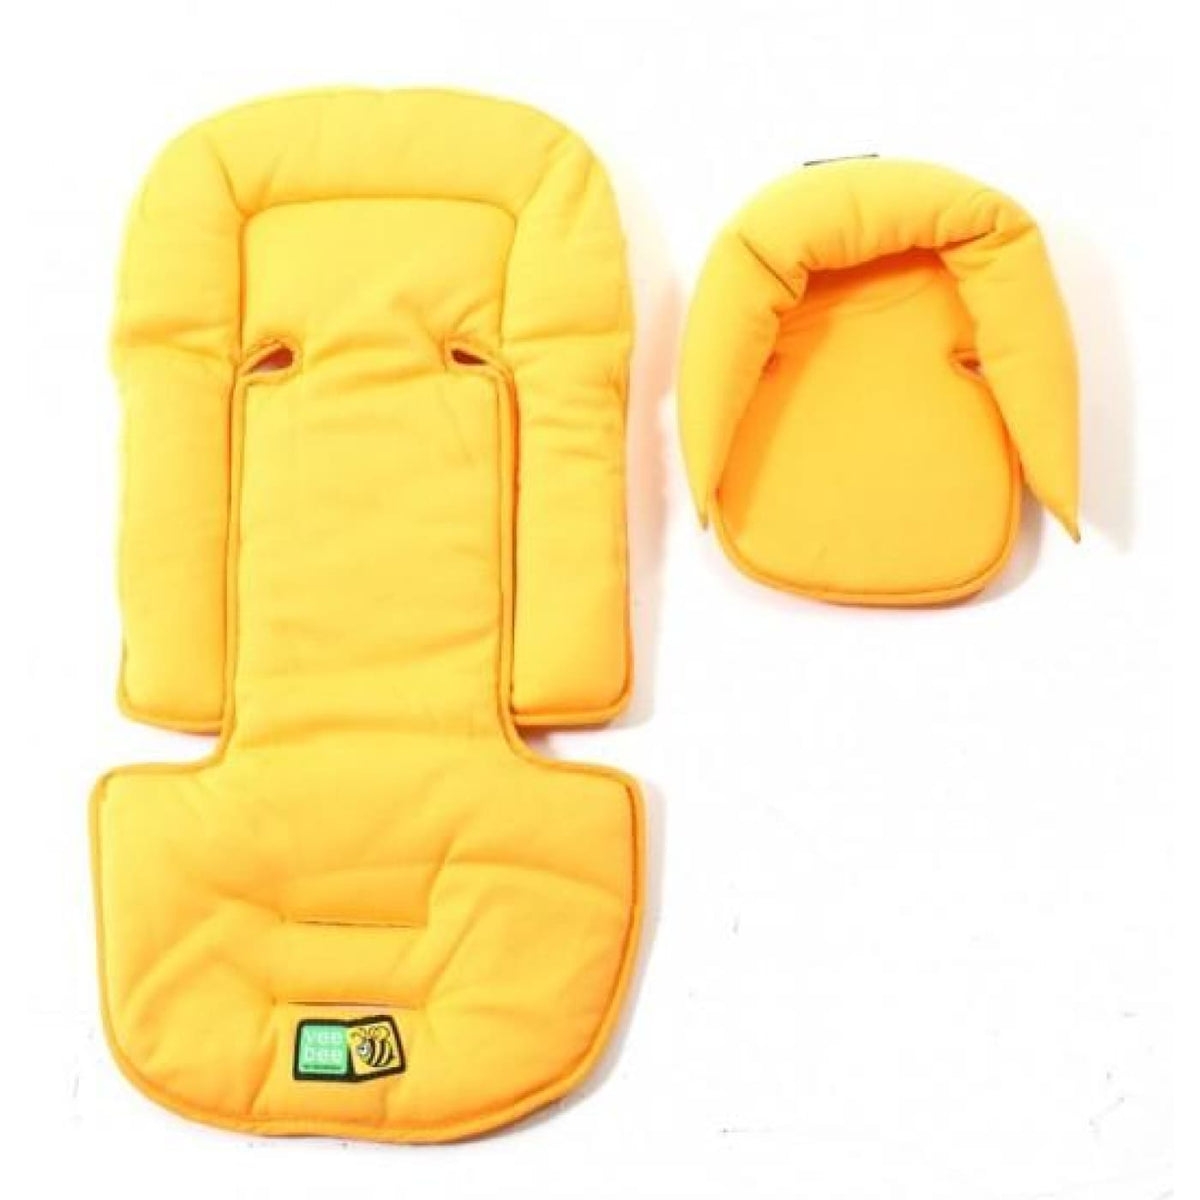 Veebee Allsorts Seat Pad & Head Hugger - Sunshine - PRAMS & STROLLERS - HEAD SUPPORTS